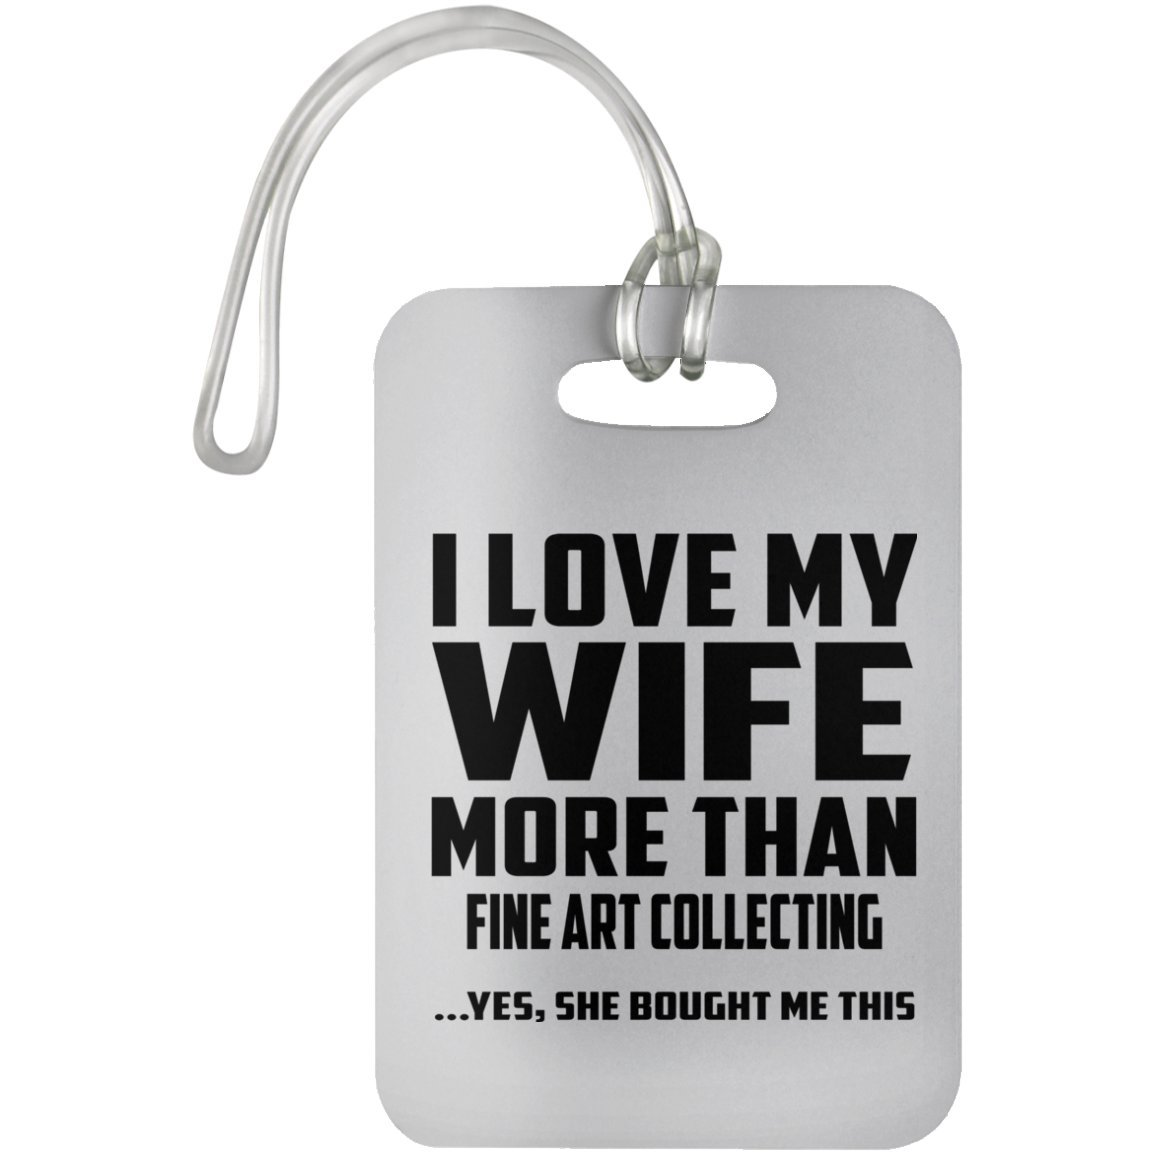 Husband Luggage Tag I Love My Wife More Than Fine Art Collecting .Yes, She Bought Me This - Luggage Tag